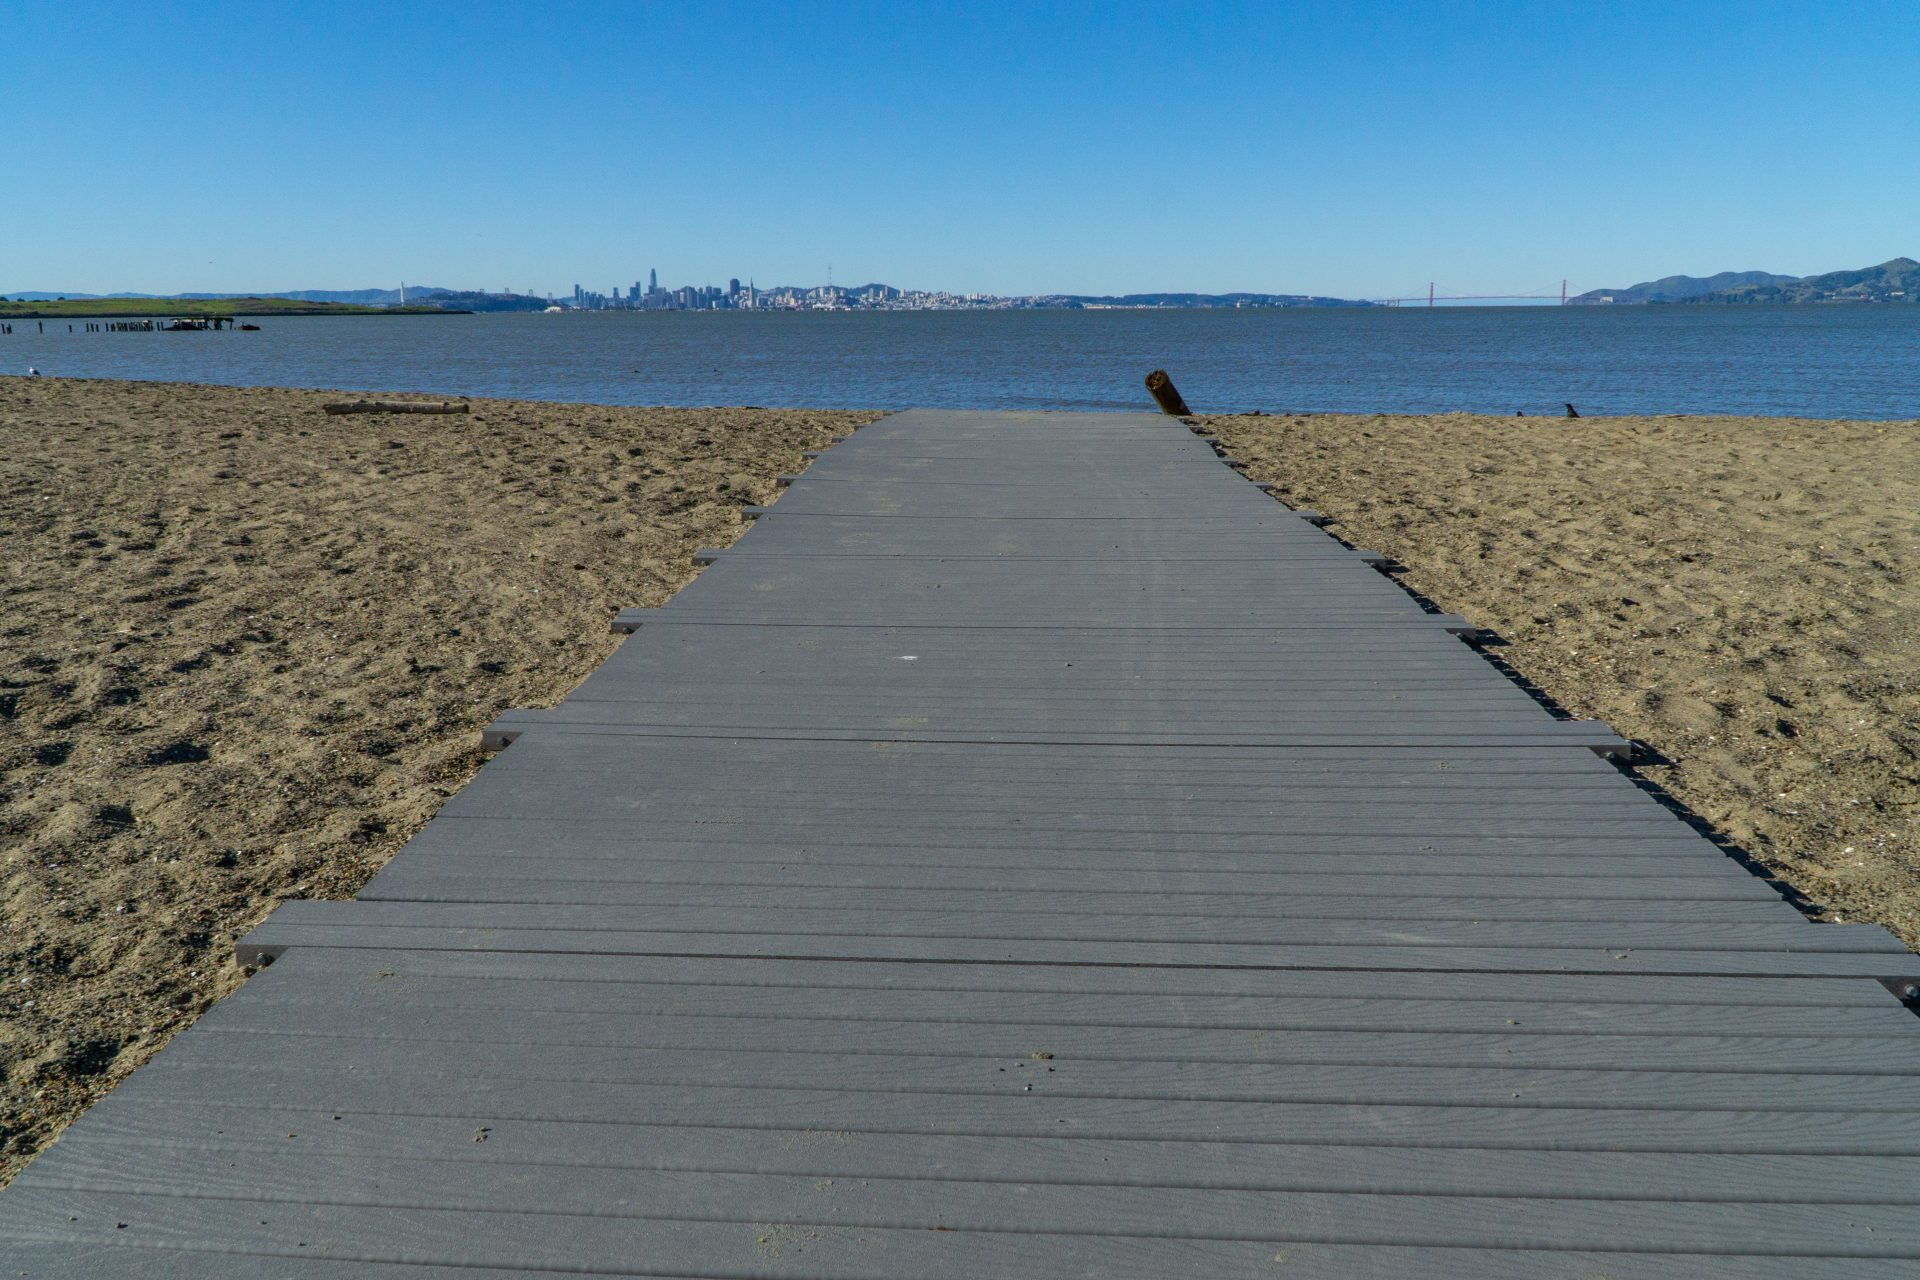 wood gangway running across sand to water